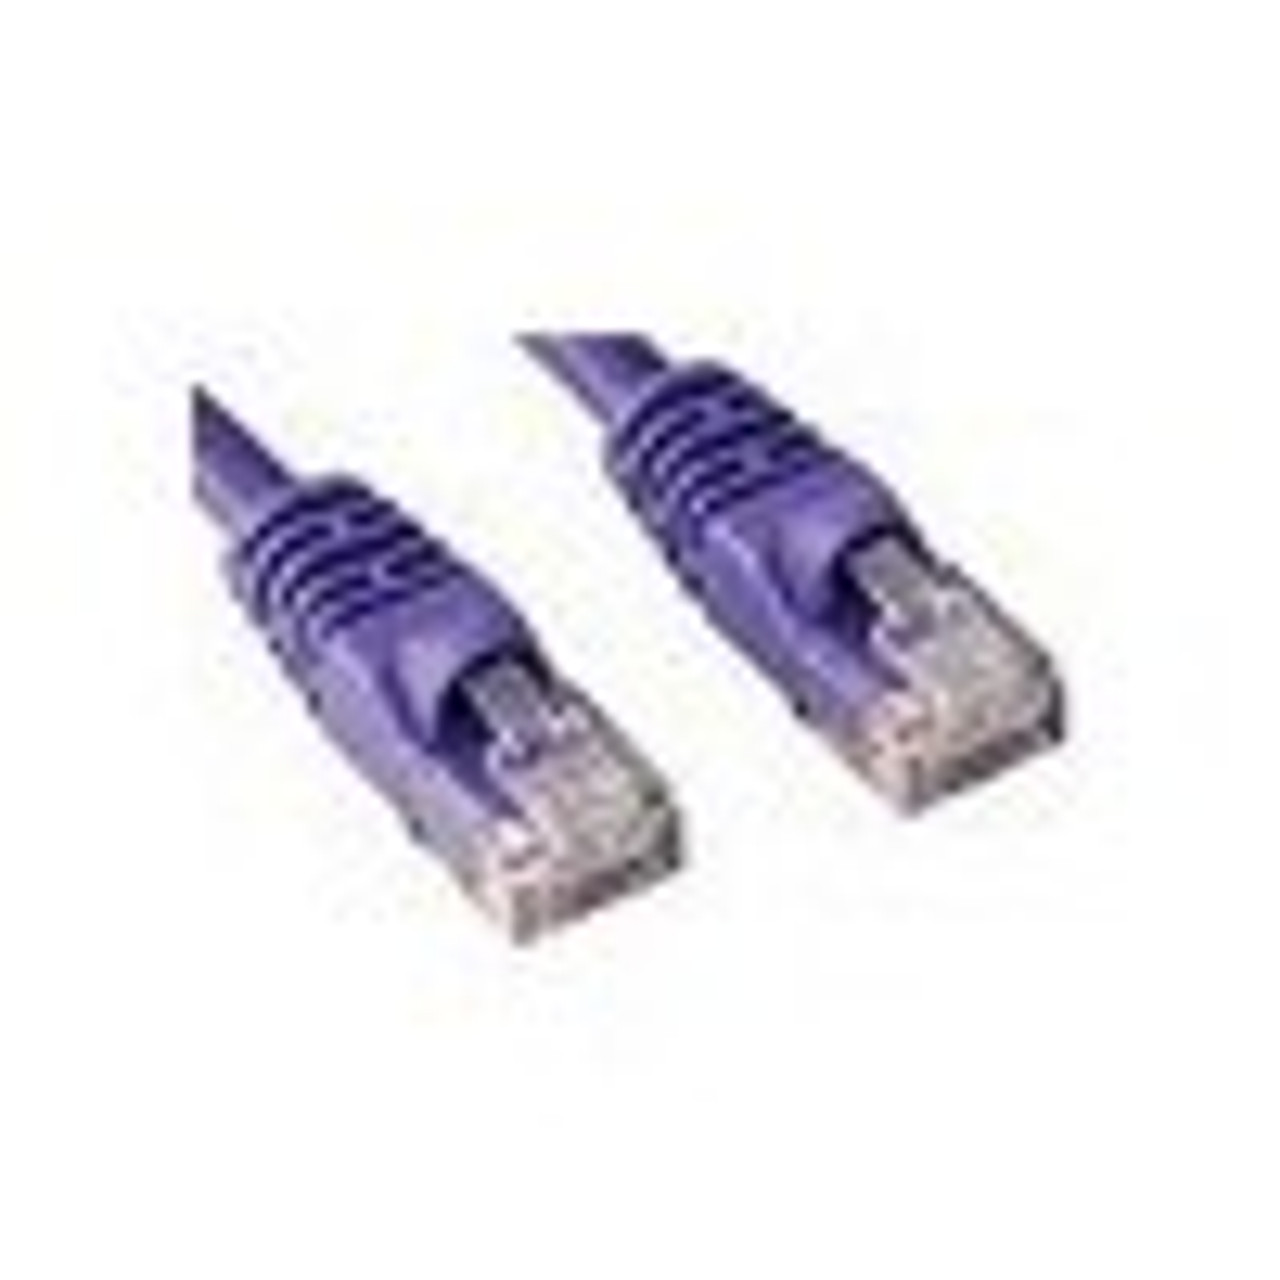 Product image for CAT6  PATCH CORD 10M PURPLE Network Cable   CX Computer Superstore